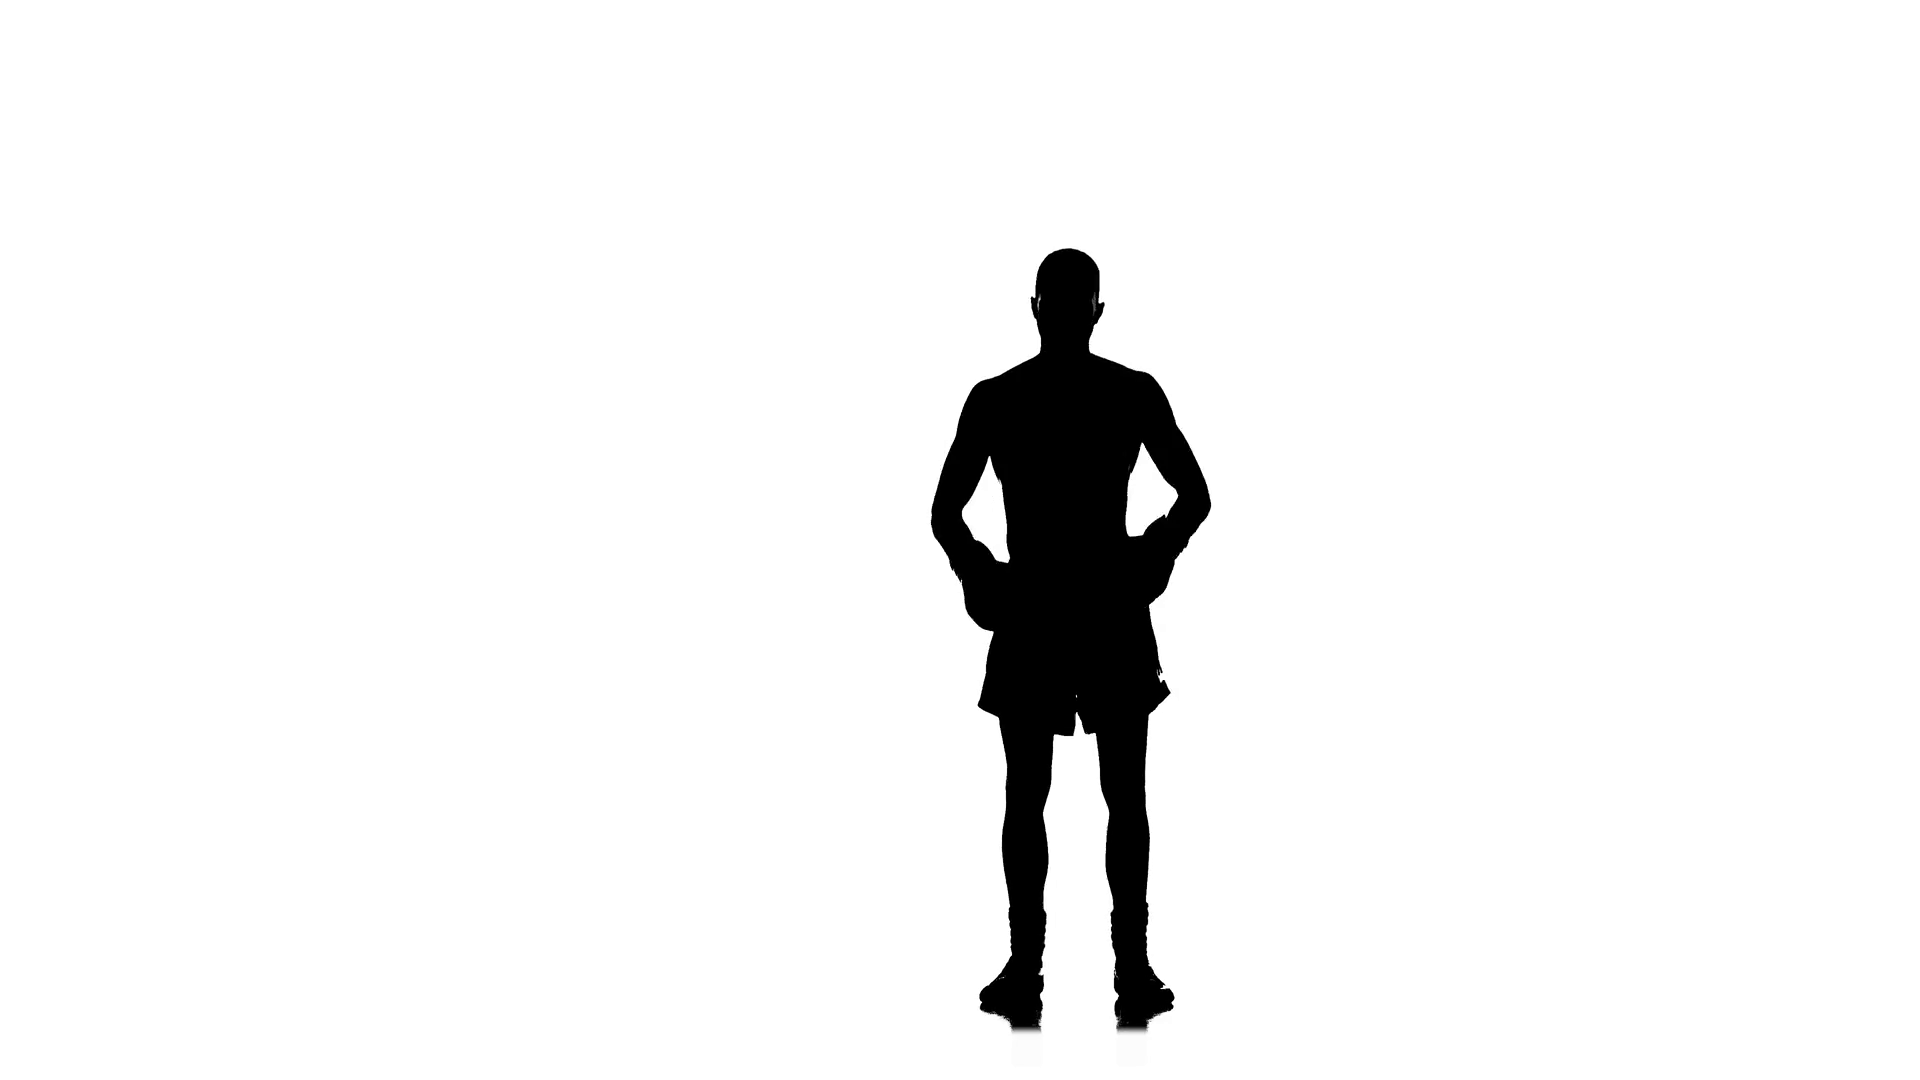 1920x1080 Boxer Winner Champion Welcomes Its Fans. Black Silhouette Stock